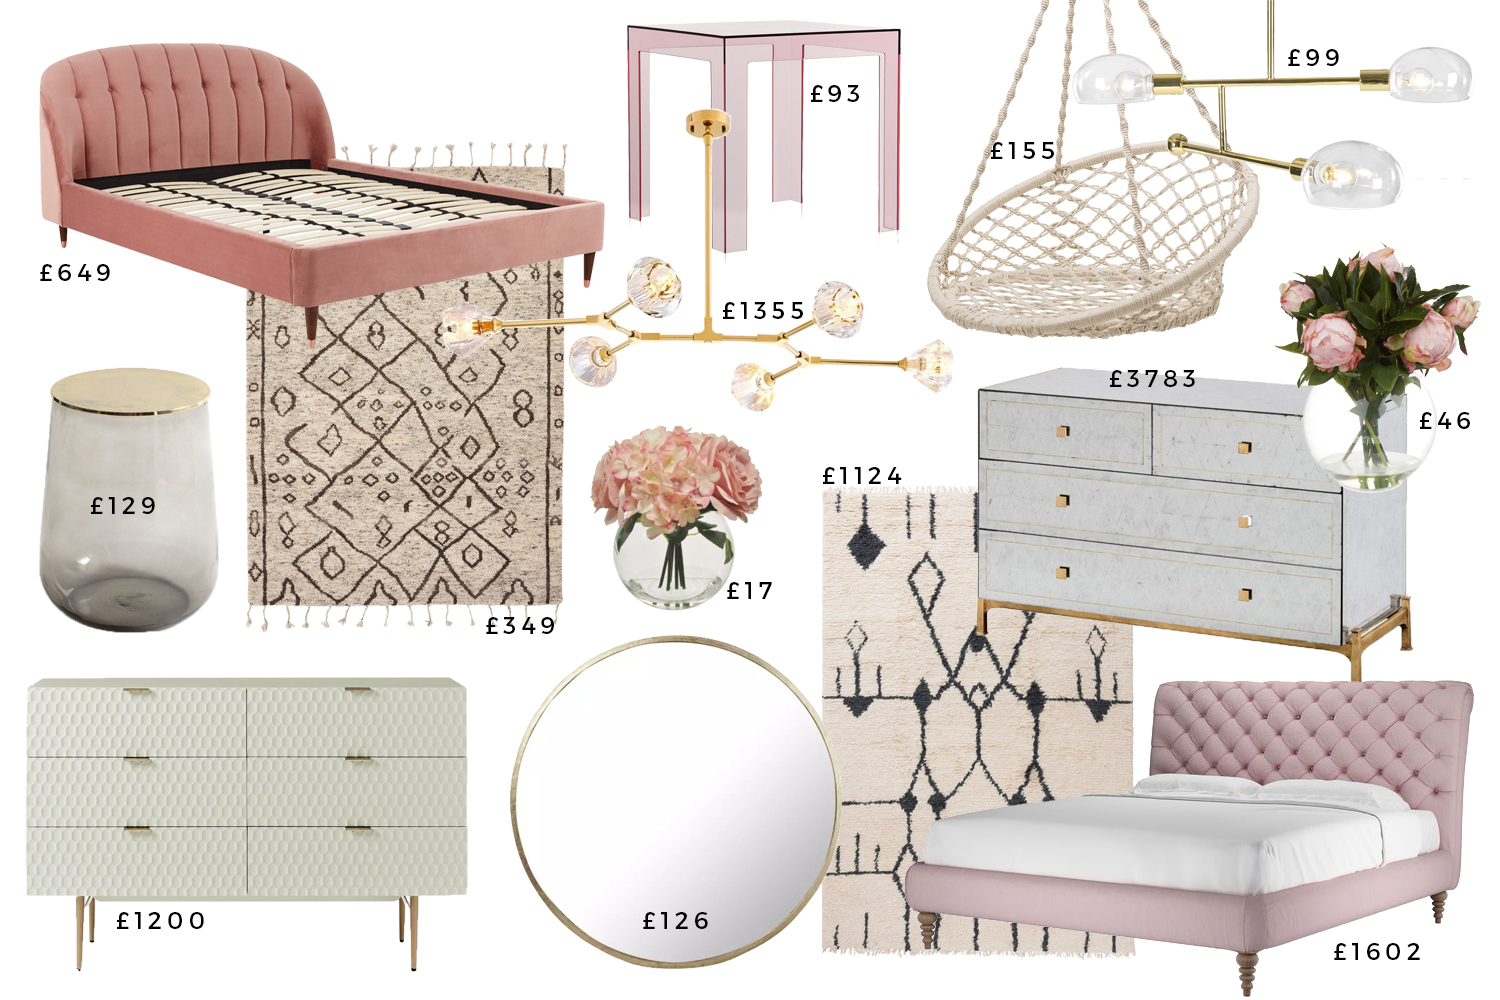 1 Glam Bedroom 3 Different Budgets Swoon Worthy